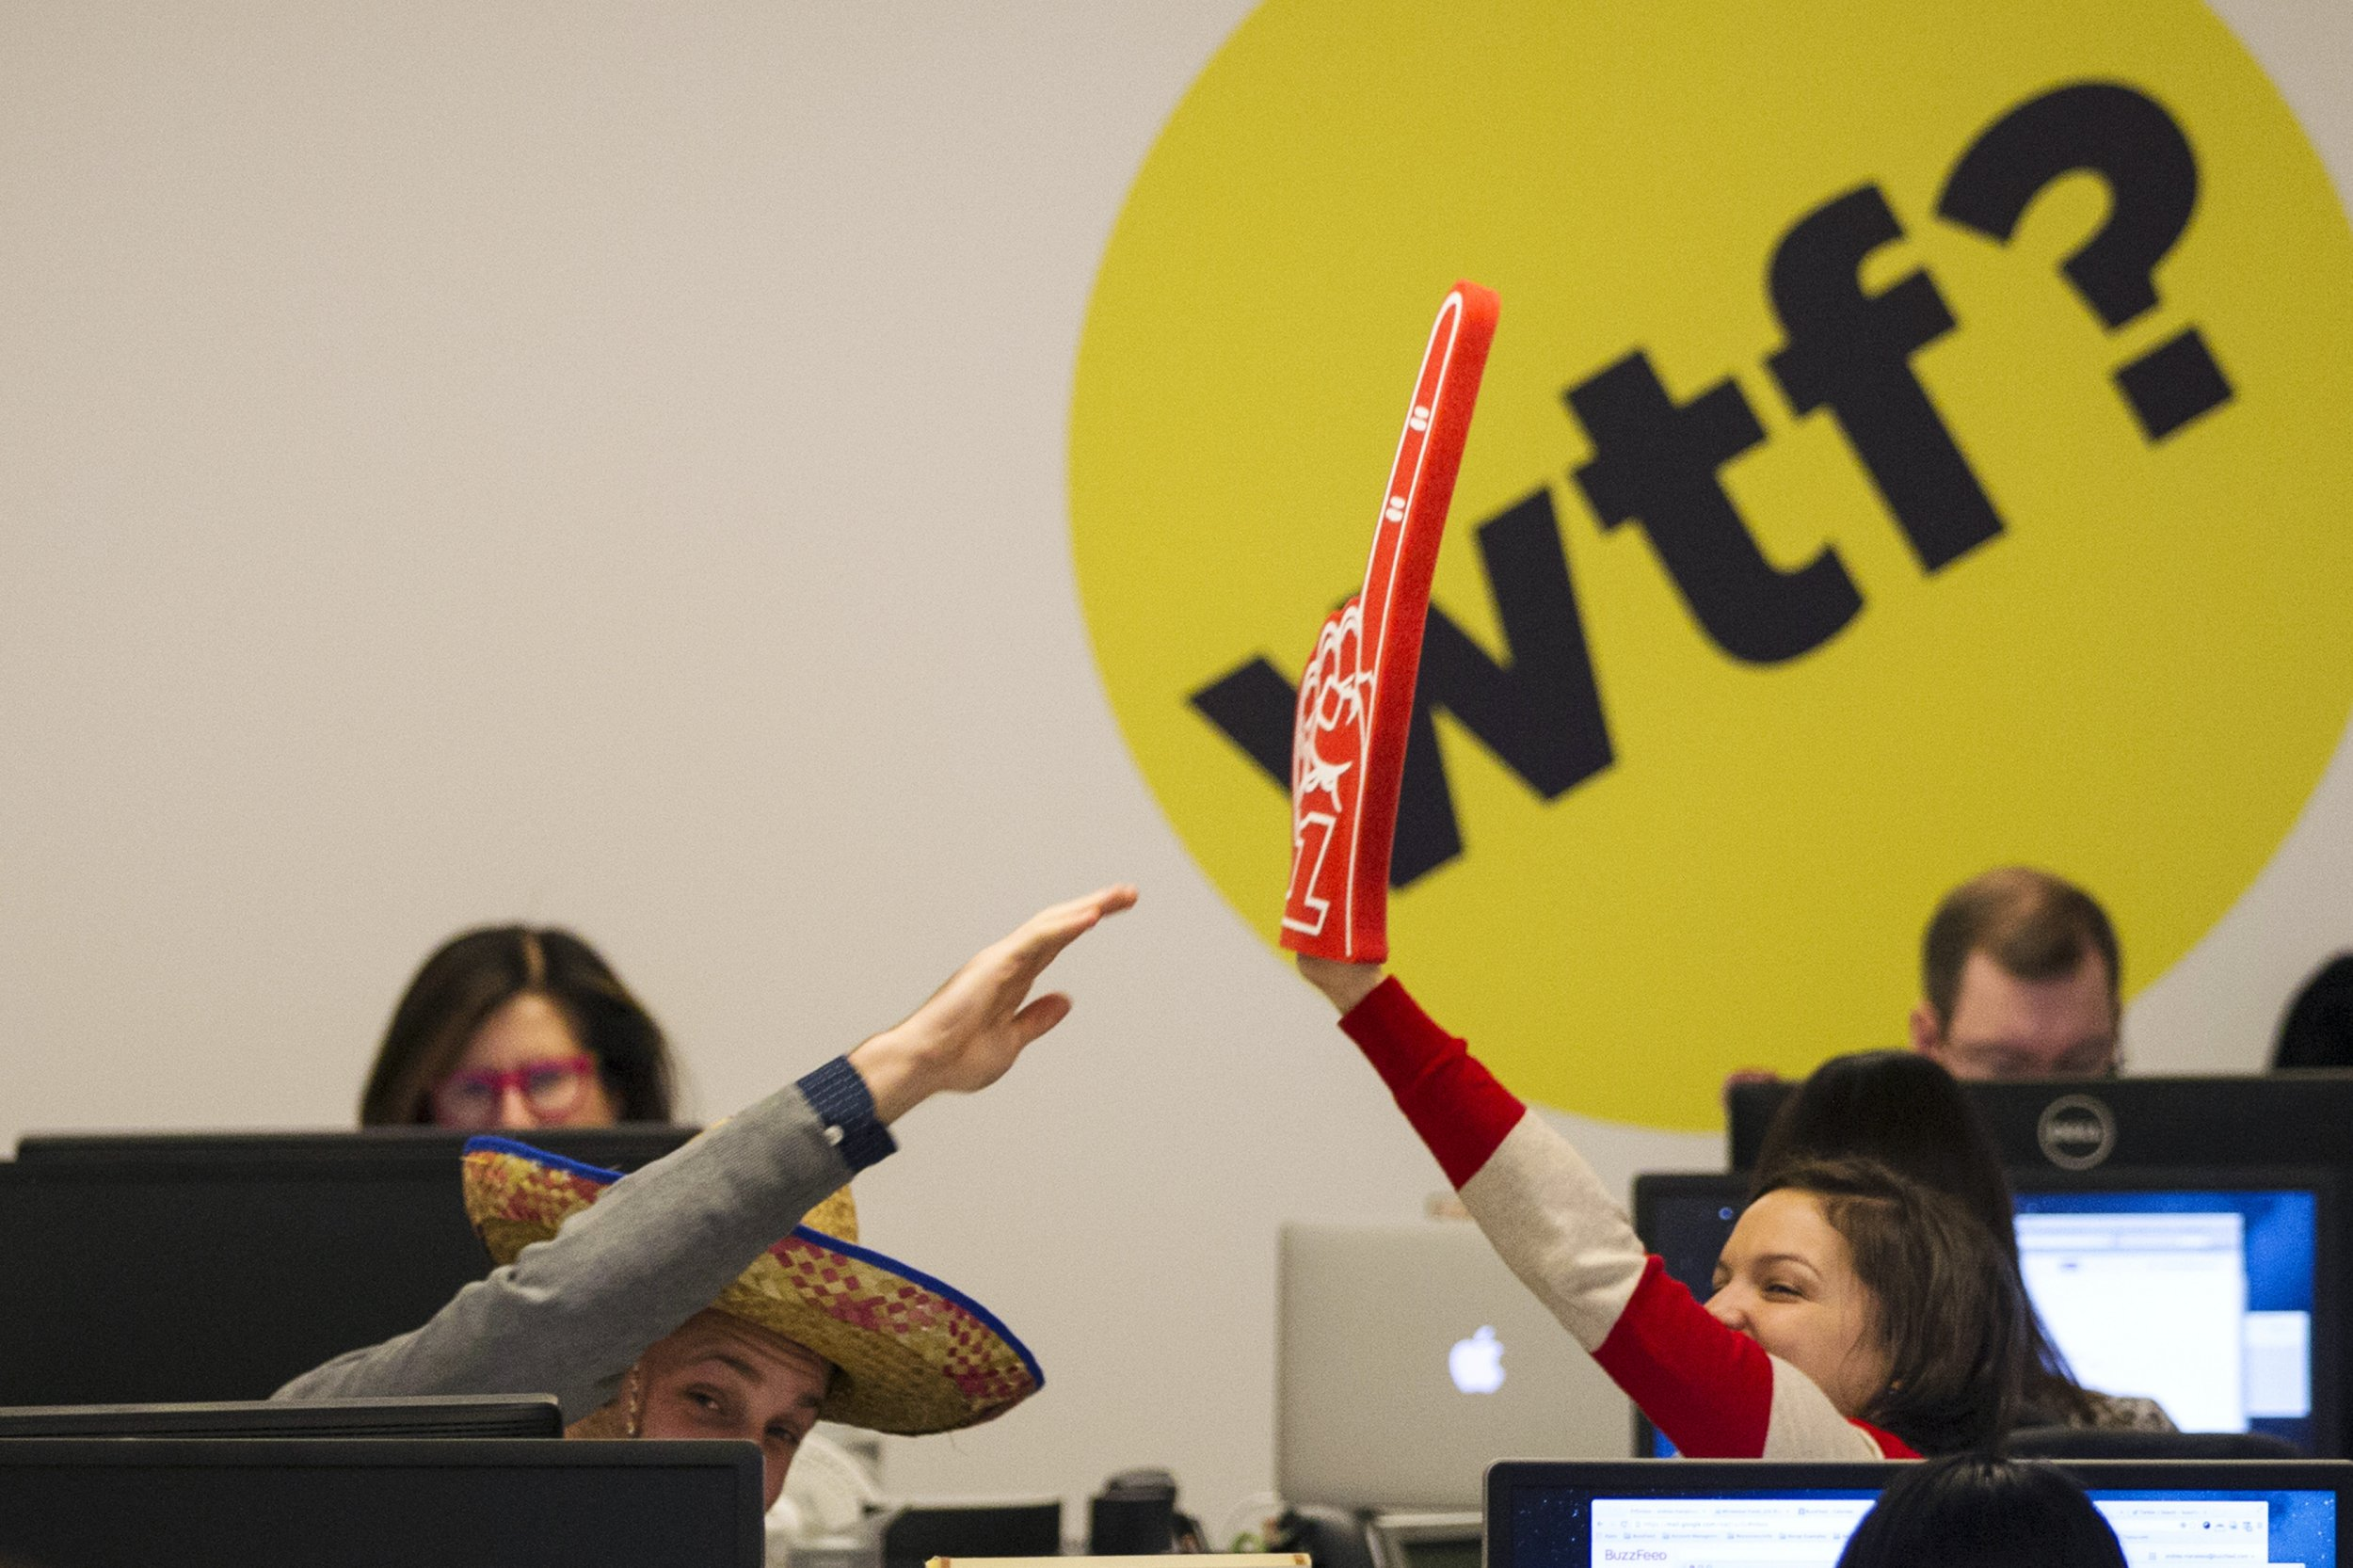 Buzzfeed employees trade high-fives while working at the company's headquarters in New York January 9, 2014.